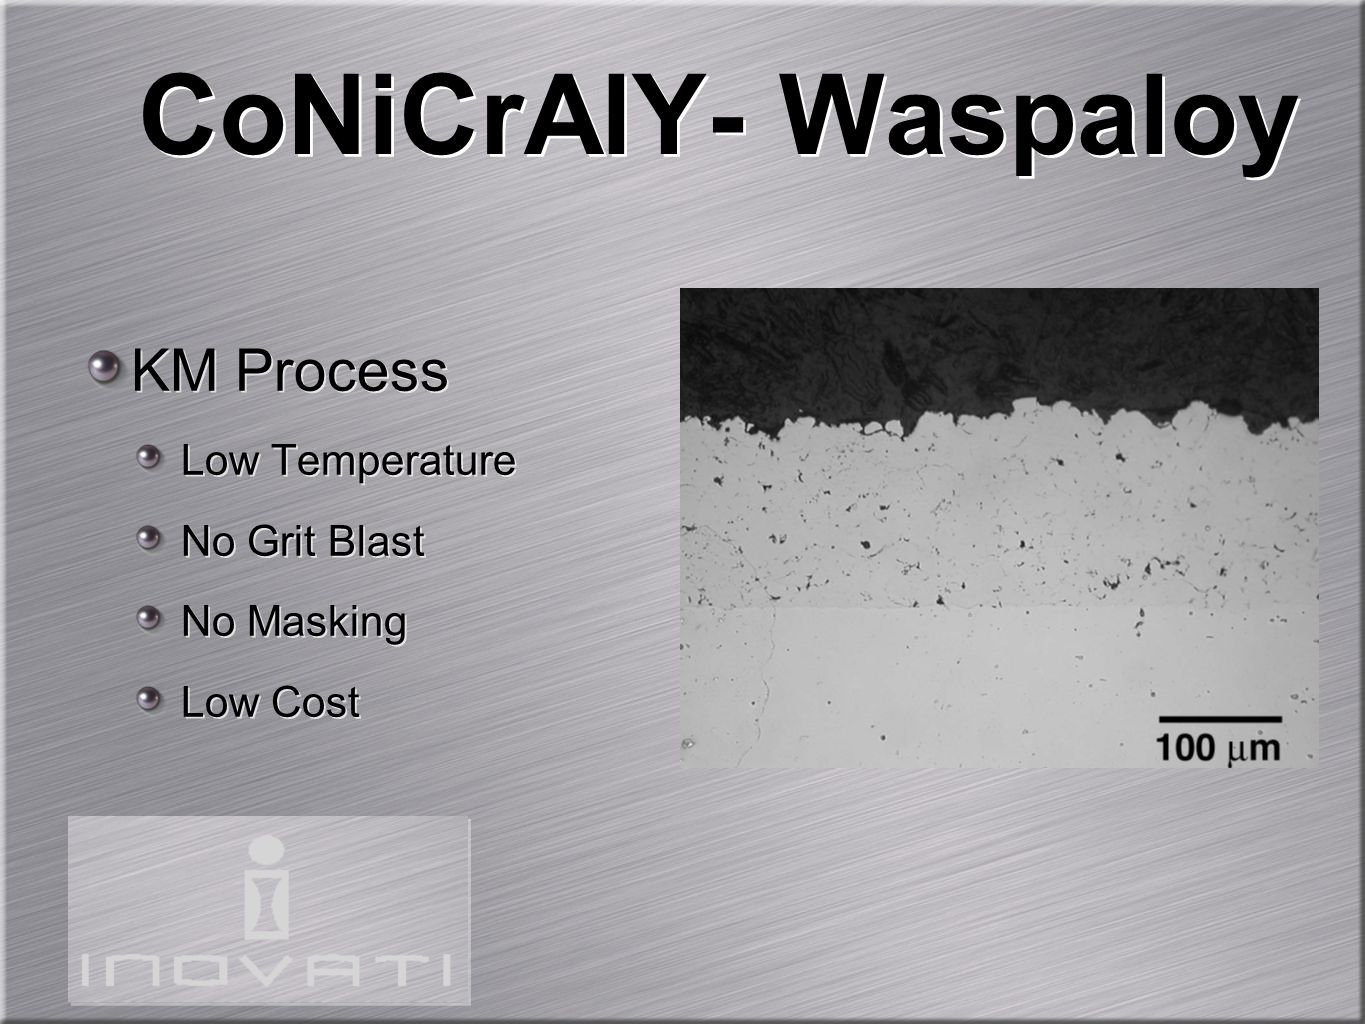 CoNiCrAlY- Waspaloy KM Process Low Temperature No Grit Blast No Masking Low Cost KM Process Low Temperature No Grit Blast No Masking Low Cost